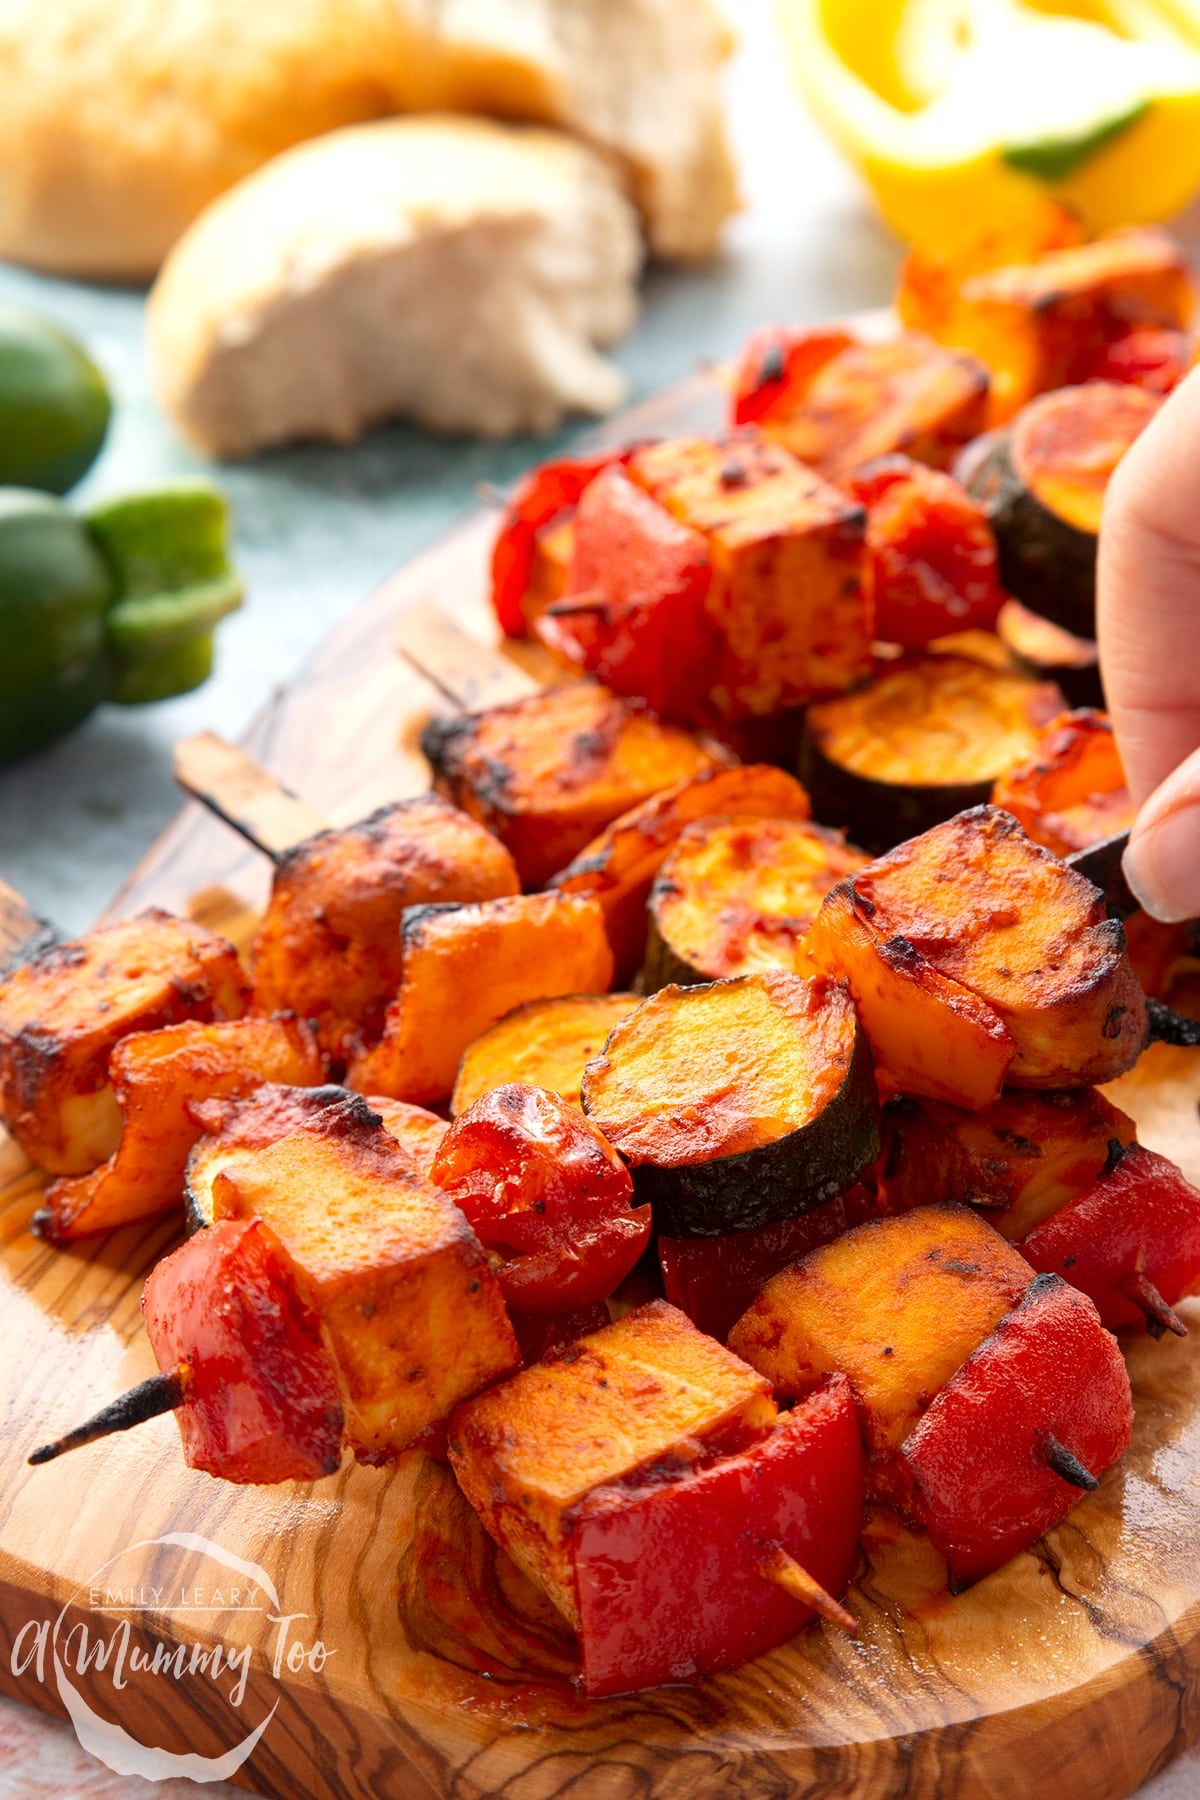 Tofu skewers piled on a wooden board. A hand reaches for one